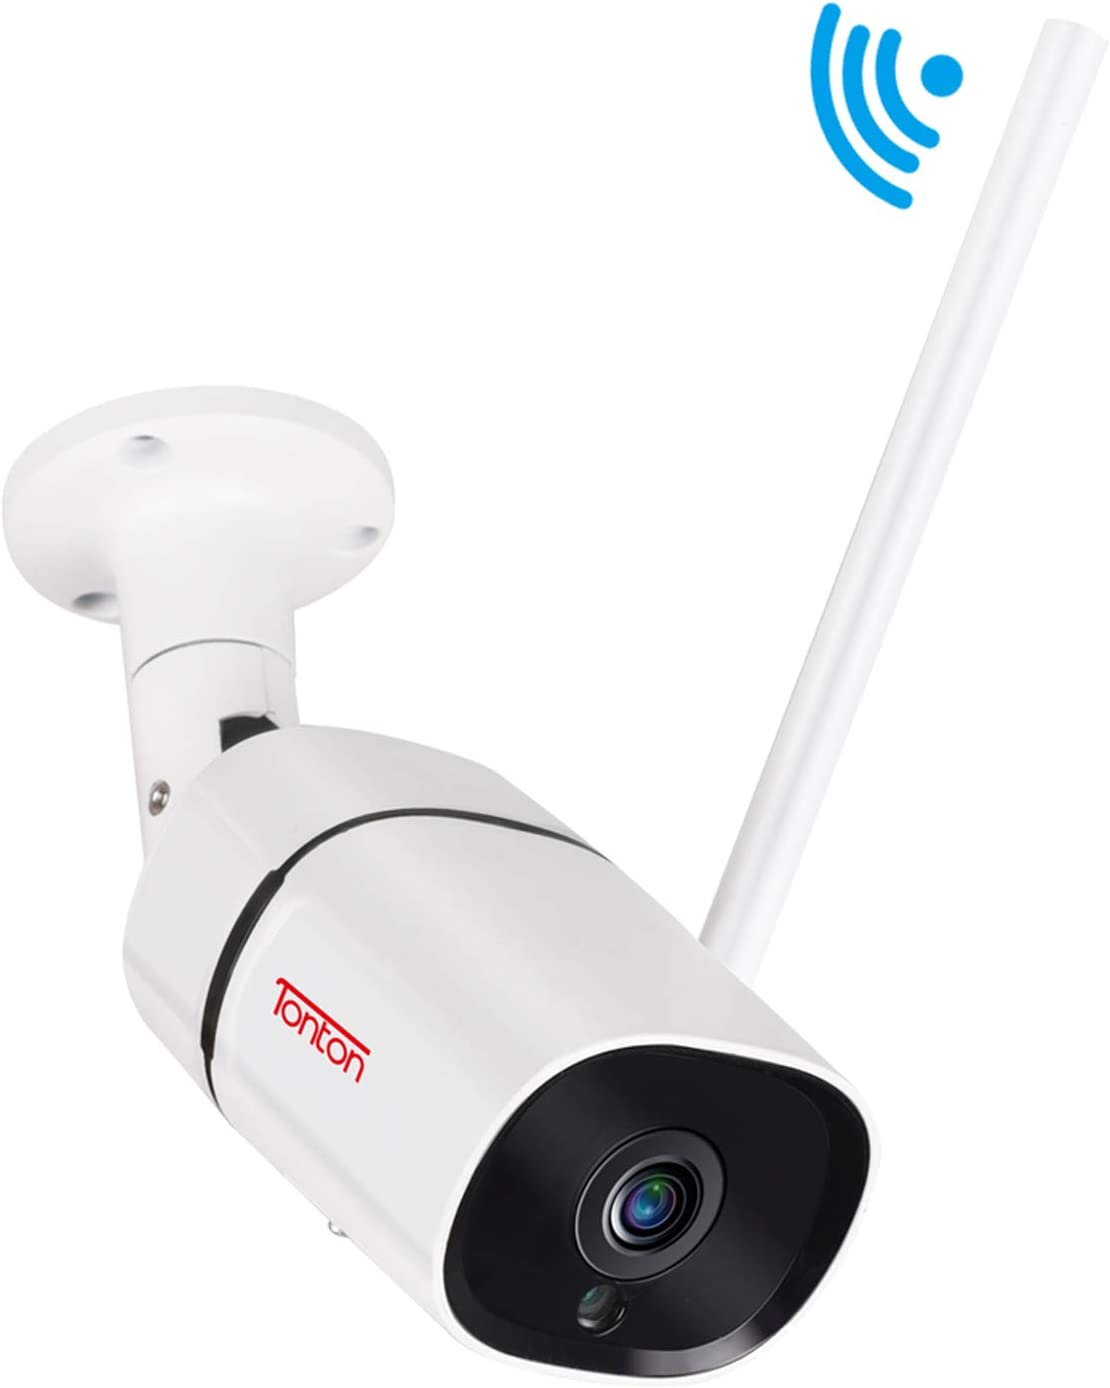 [2019 Newest] Tonton 1080P FHD WiFi IP Security Bullet Camera Outdoor, 2-Way Audio, Smart Motion Detection, Full Color Night Vision and Metal Shell, Support Max 128GB Micro SD Card